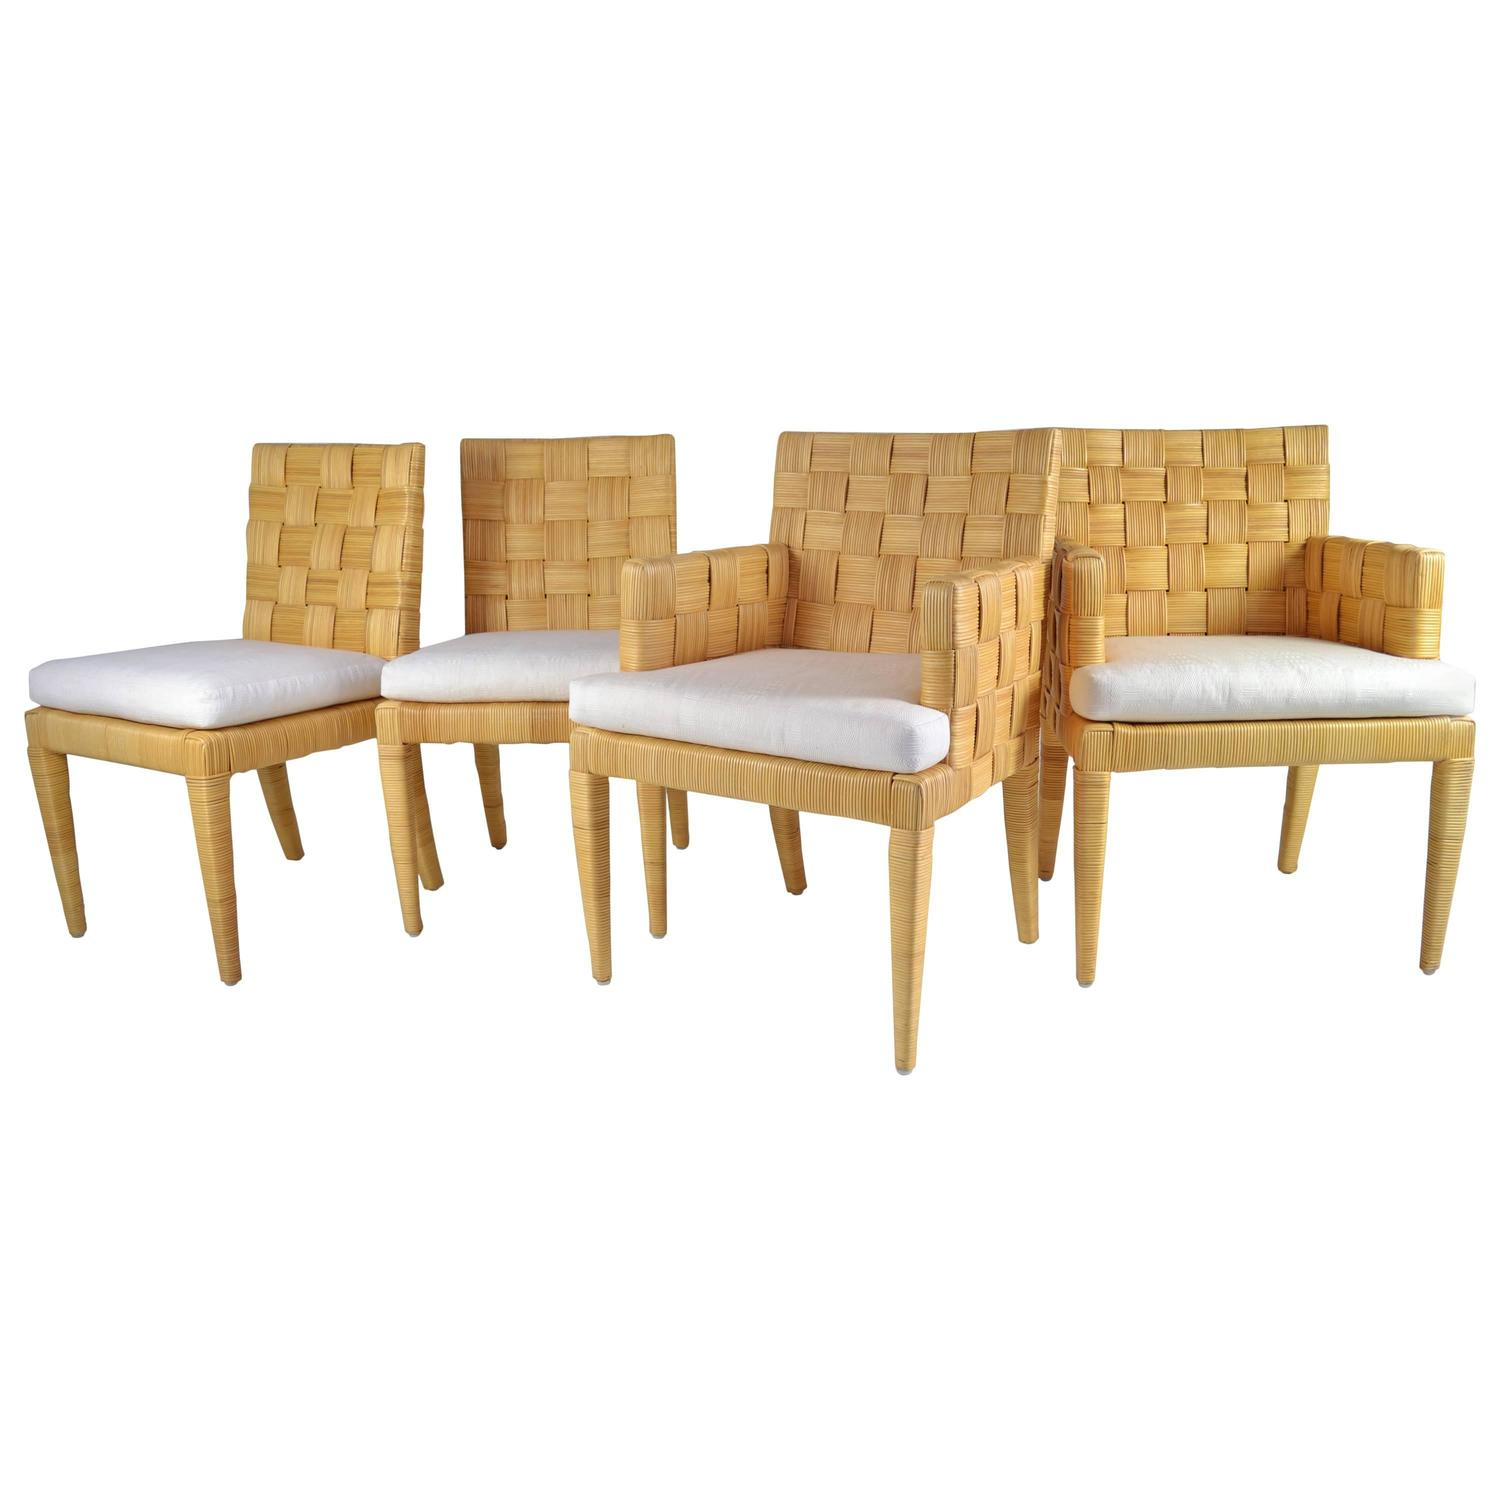 Donghia Rattan Chairs, Block Island Collection For Sale At 1stdibs